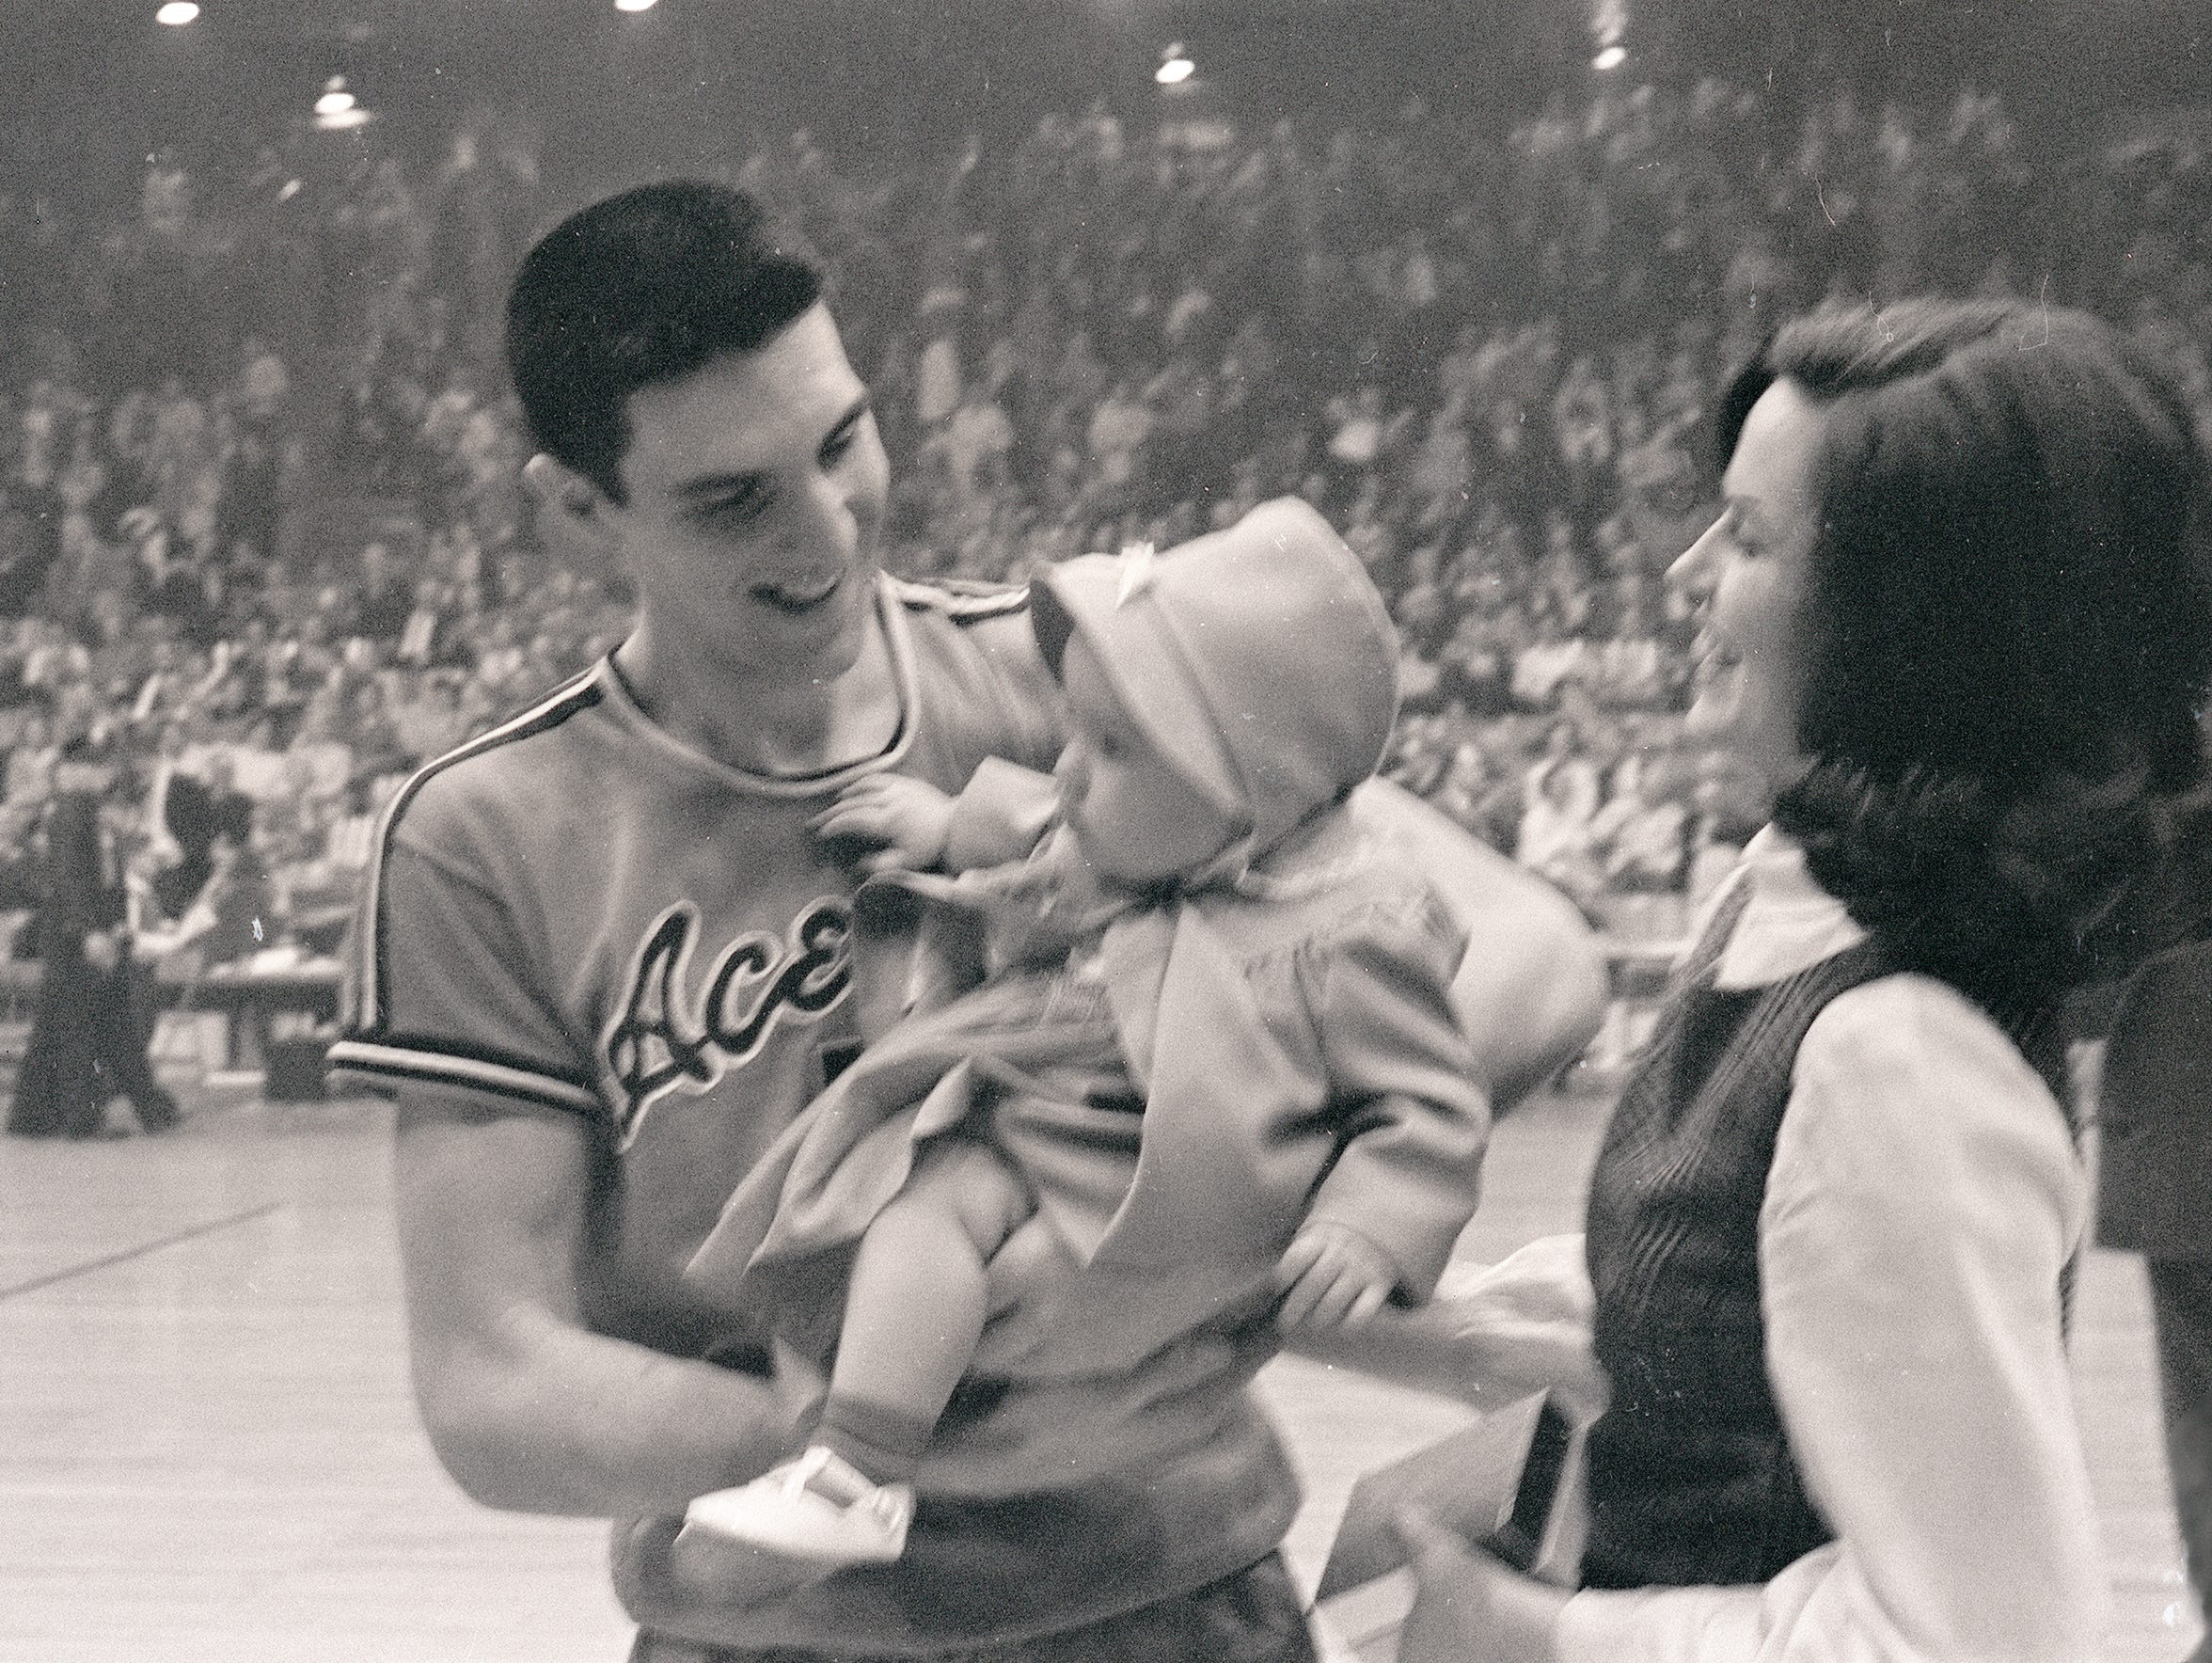 Jerry Sloan greets his wife, Bobbye and his daughter following the 1965 NCAA College Division Championship game at Roberts Stadium. UE won over Southern Illinois 85-82.